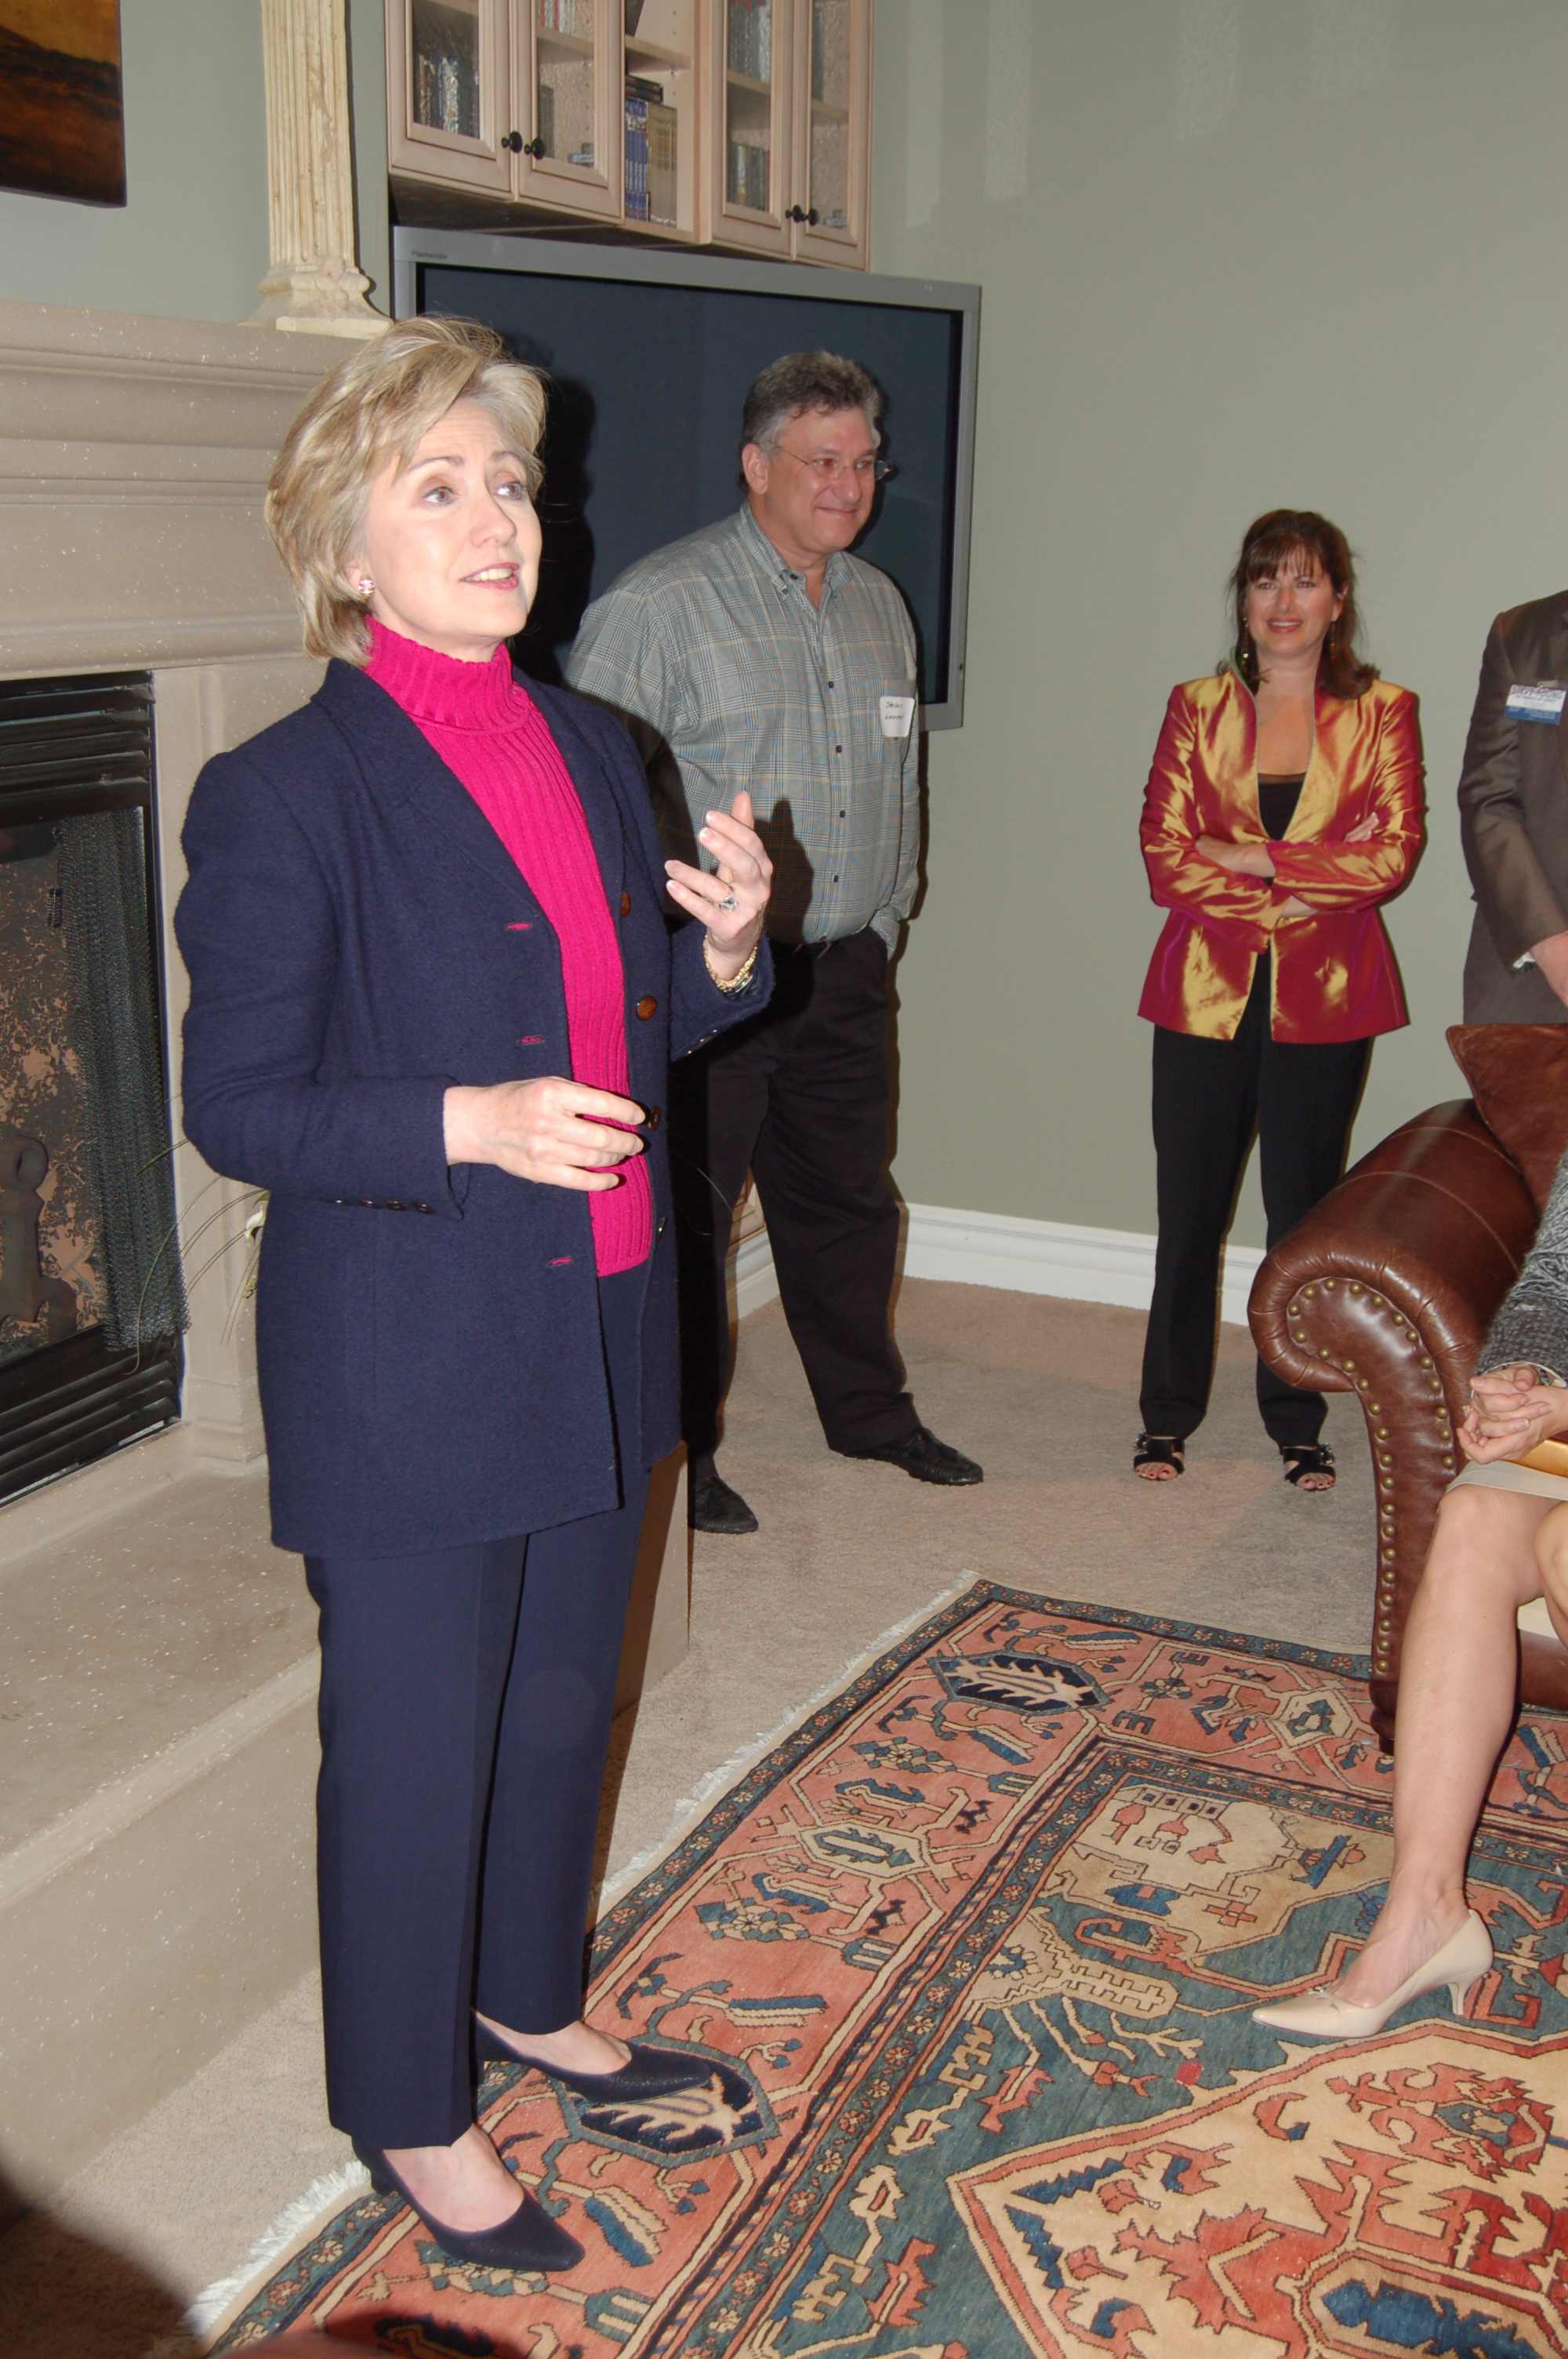 Hillary Clinton Visits Laguna Beach In 2007 At The Home Of Stevan And Rona Gromet